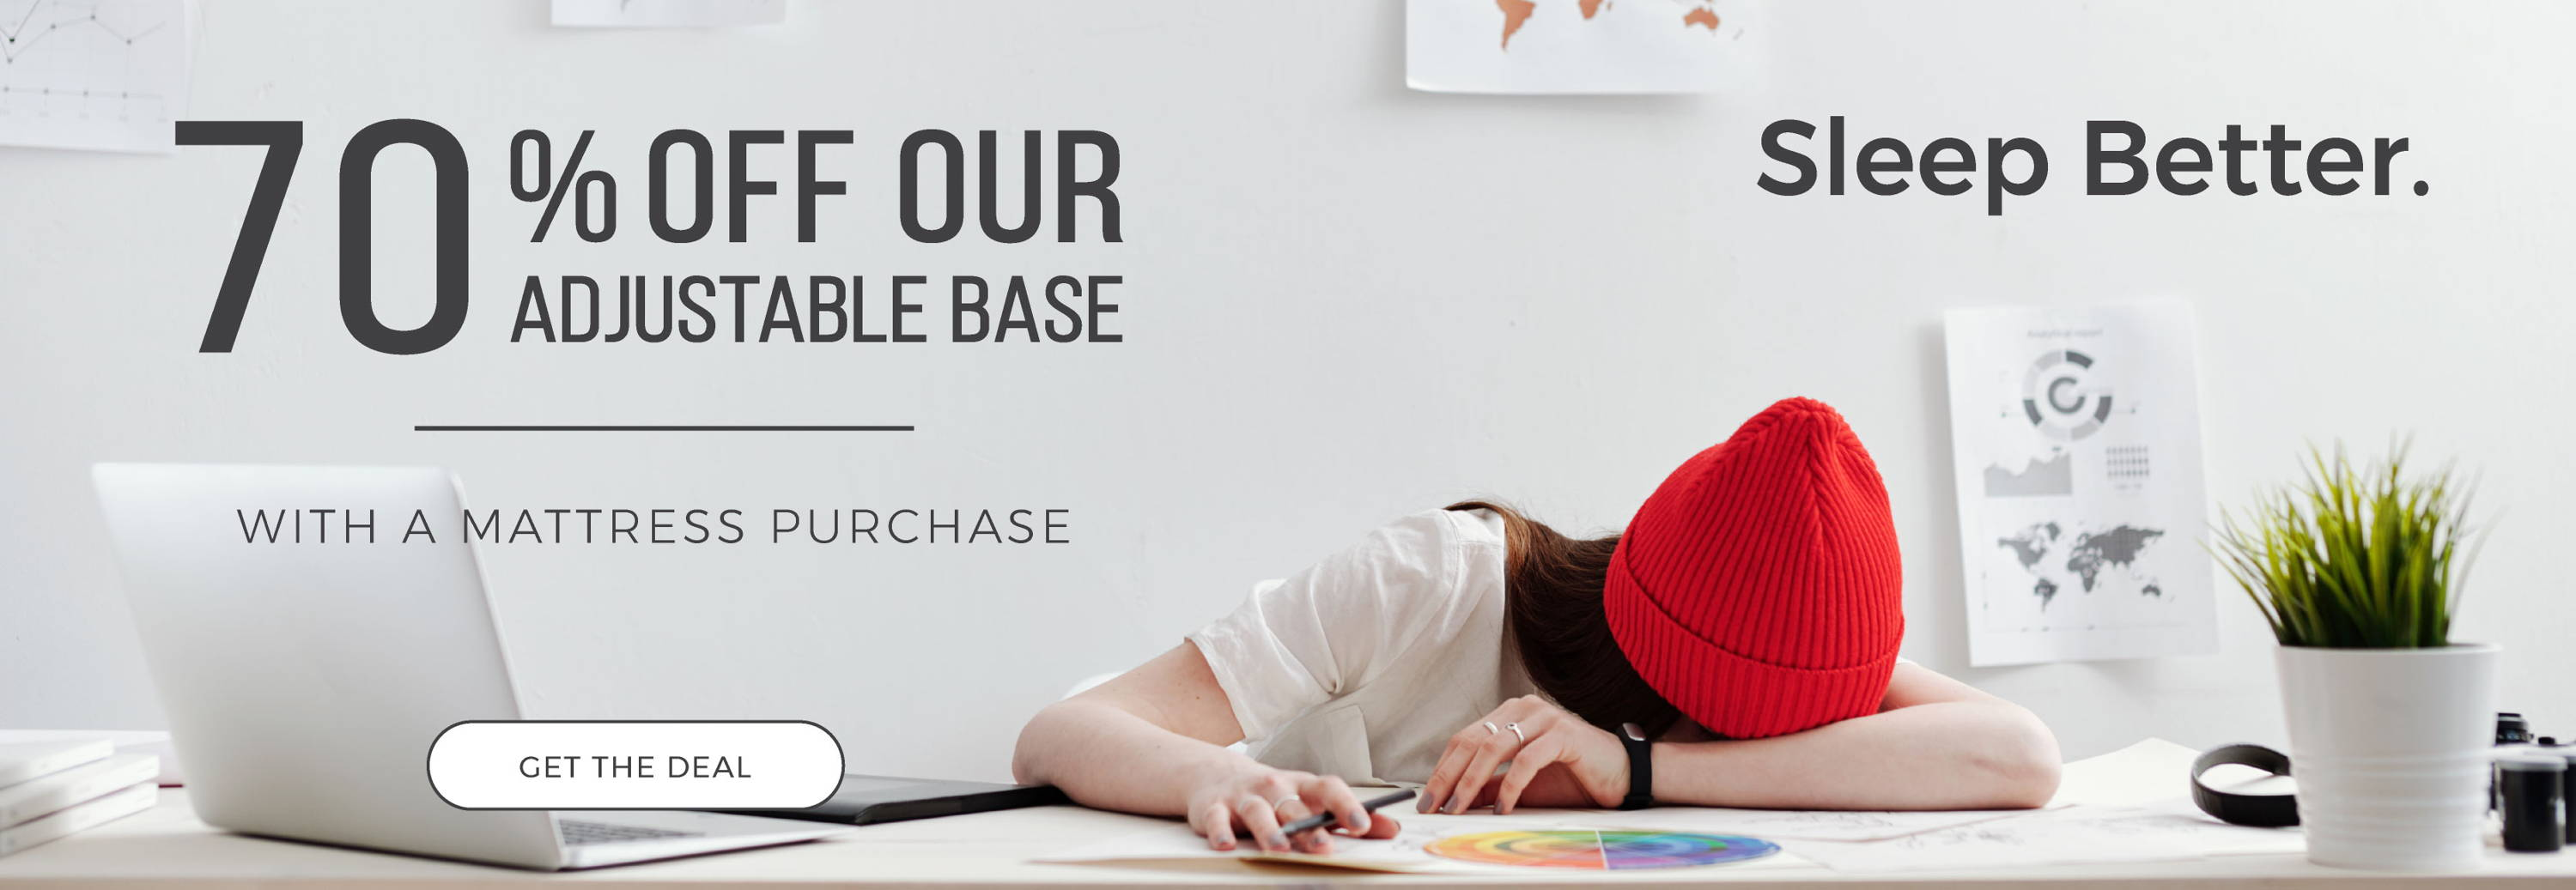 70% off our adjustable base when you purchase a mattress